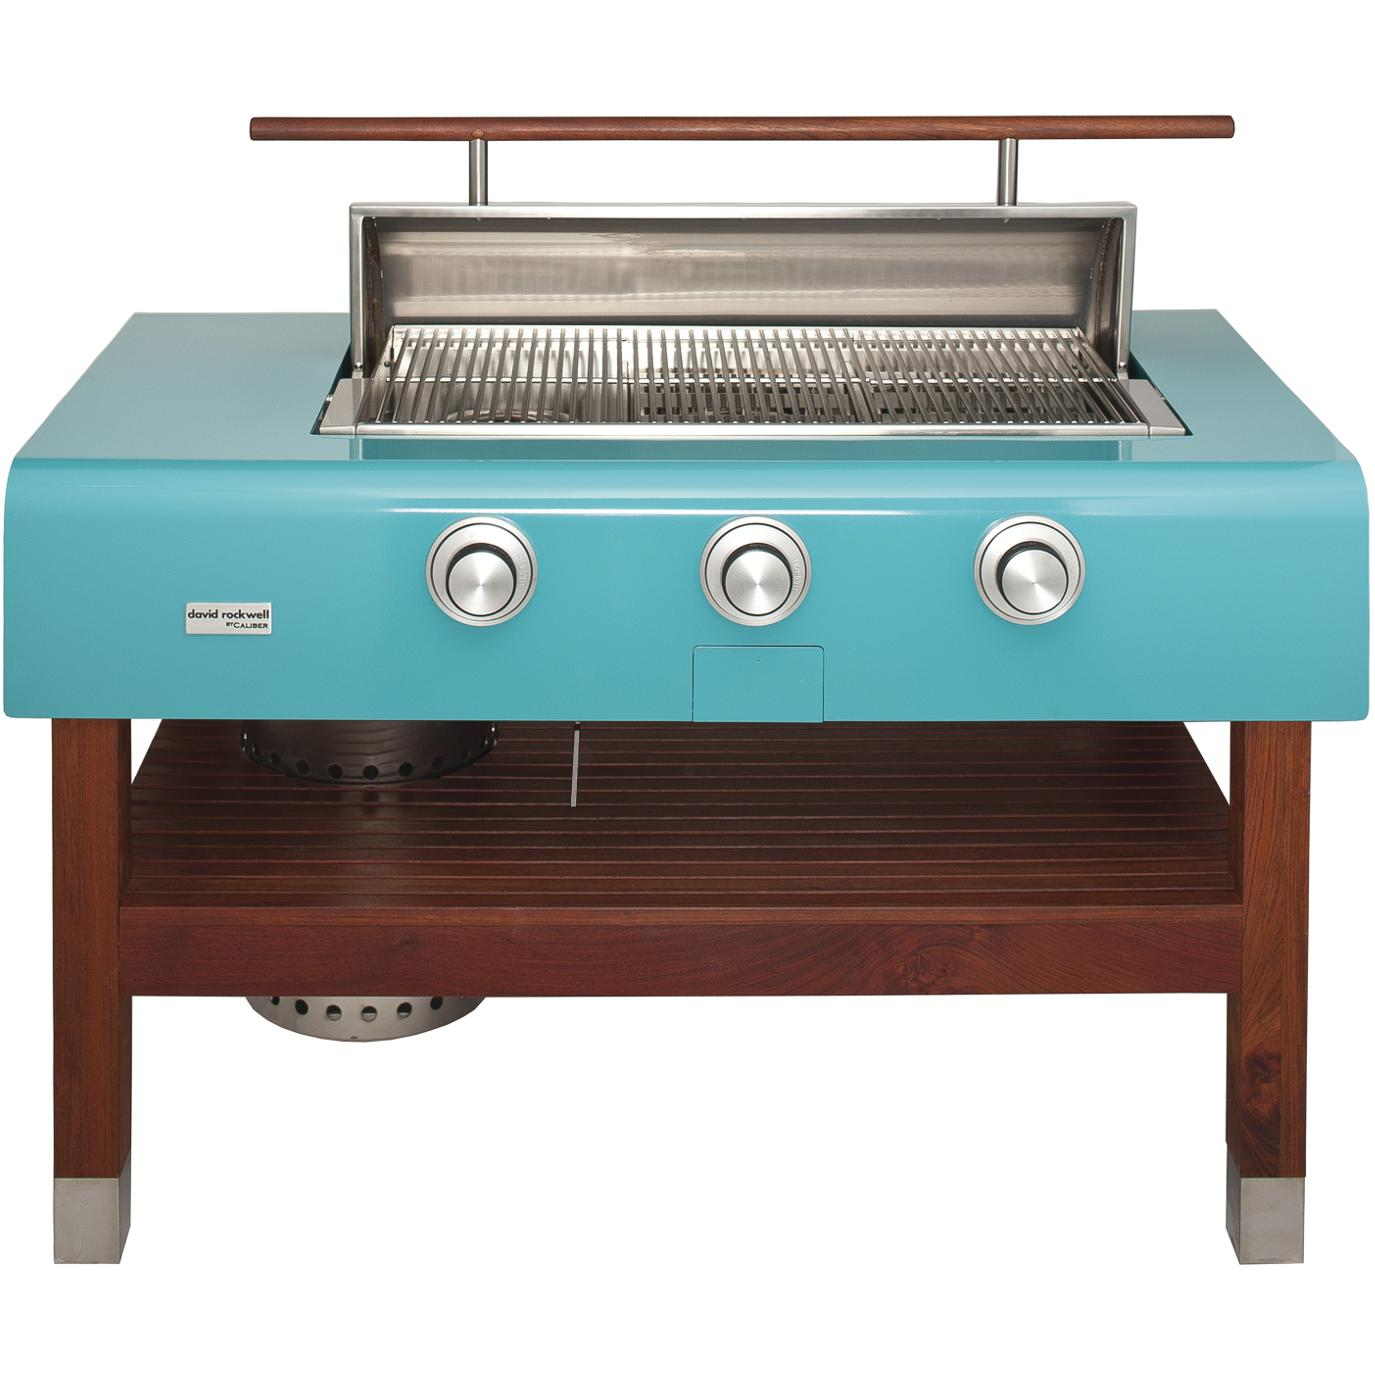 Rockwell By Caliber 60-Inch Freestanding Propane Gas Gril...